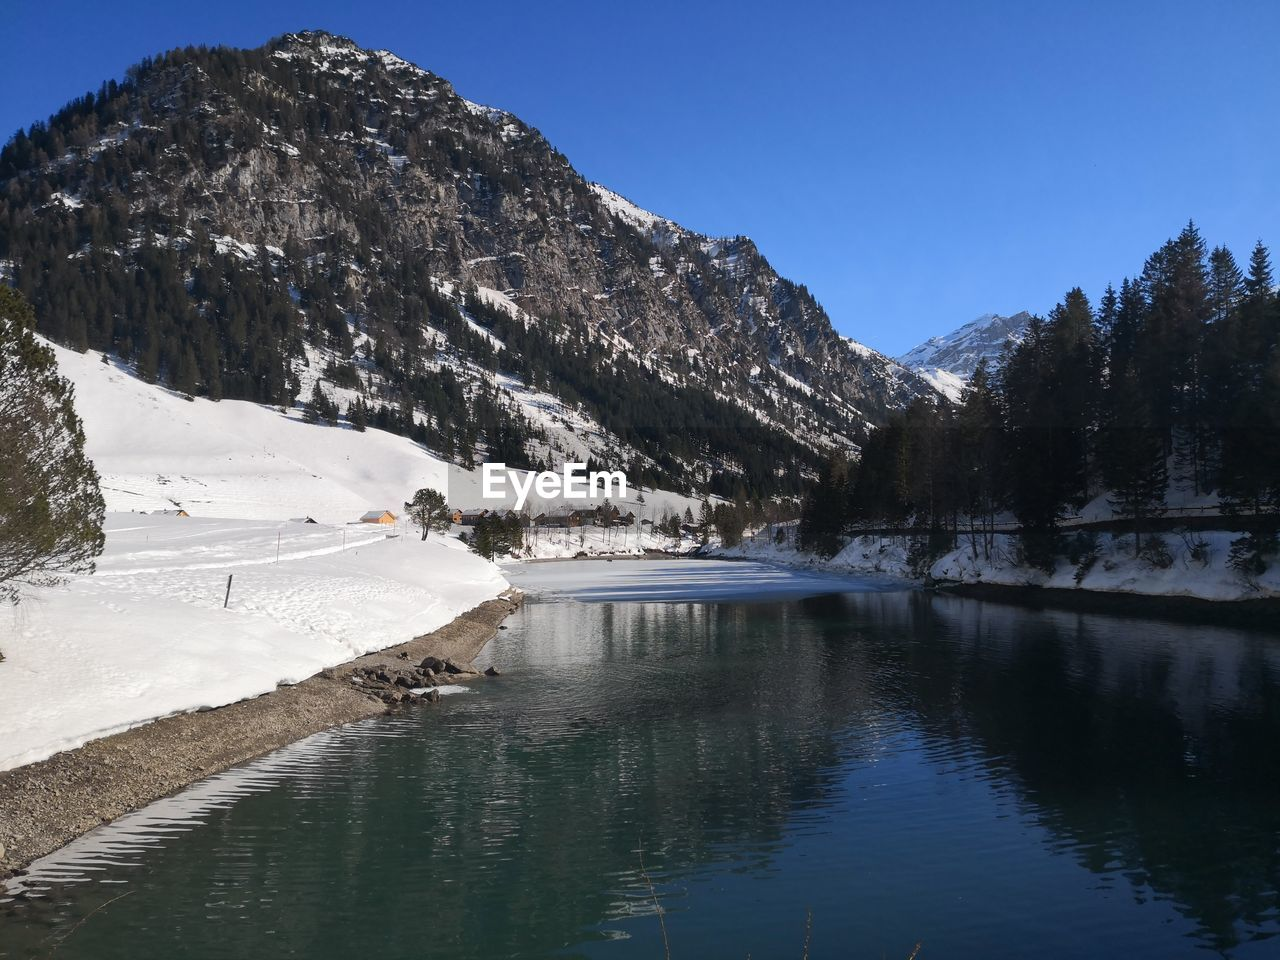 water, mountain, scenics - nature, beauty in nature, sky, tranquility, tranquil scene, cold temperature, winter, lake, snow, tree, nature, mountain range, day, reflection, waterfront, no people, outdoors, snowcapped mountain, mountain peak